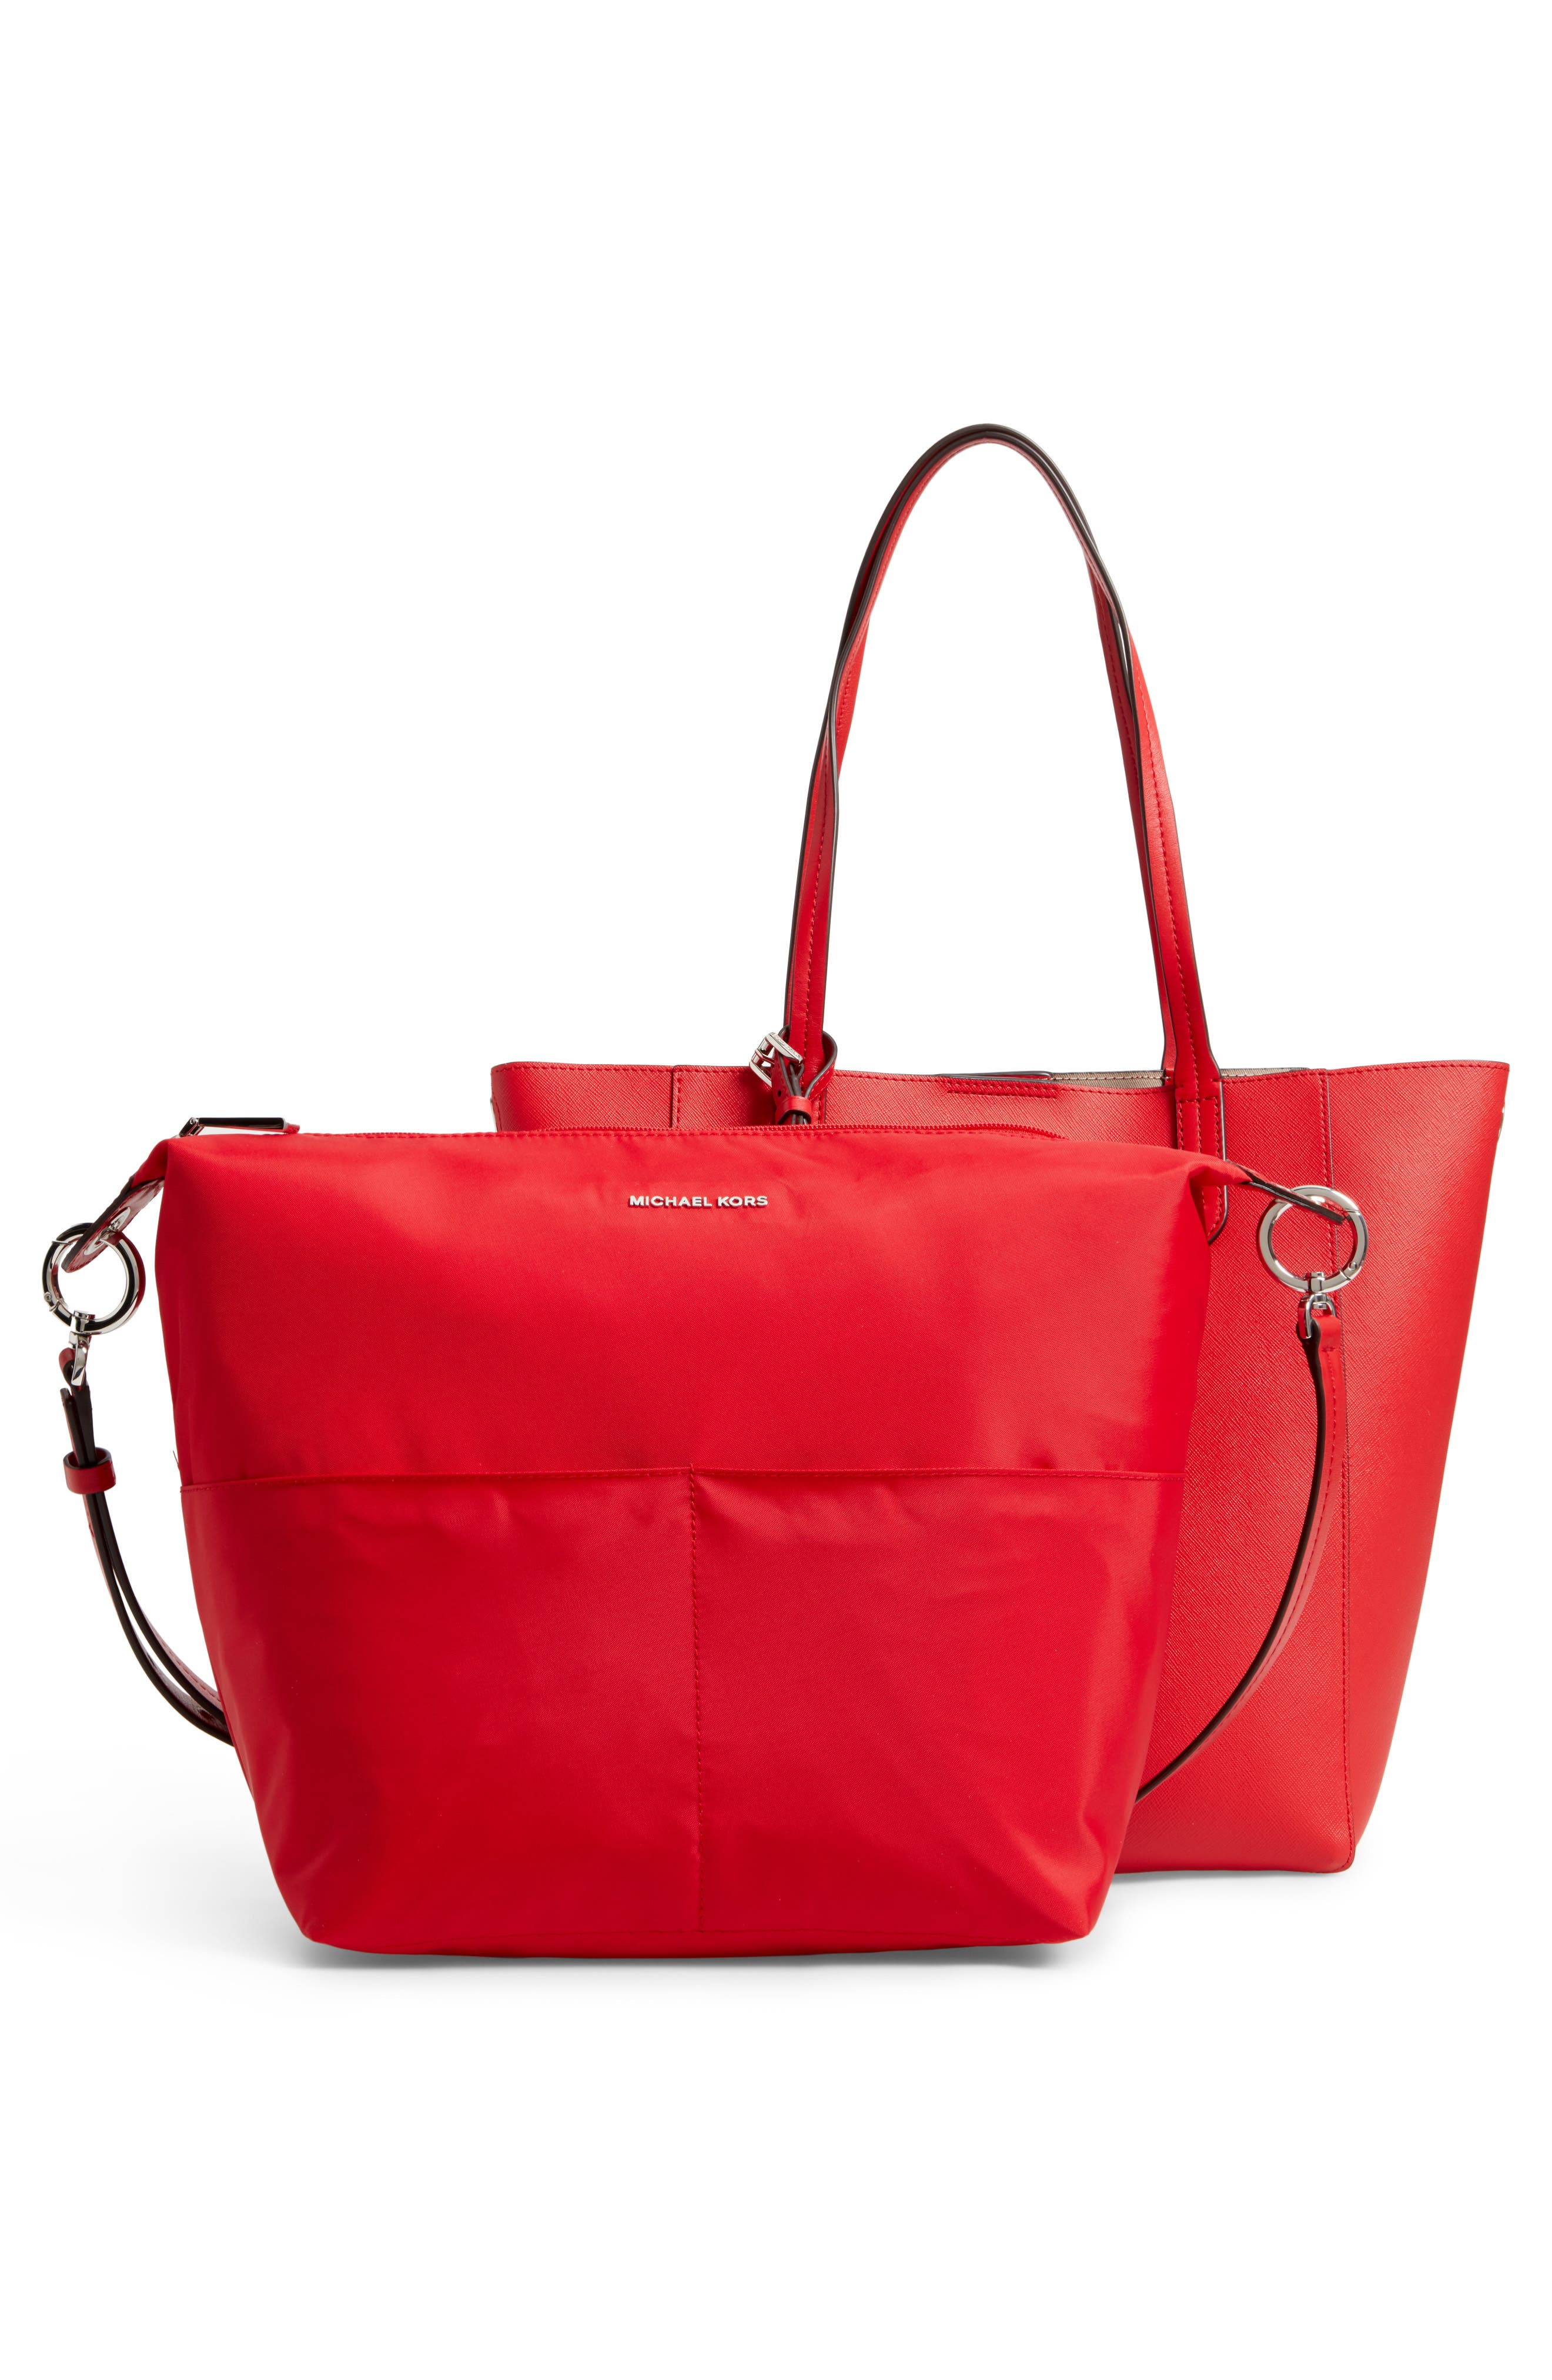 Penny Large Saffiano Convertible Leather Tote,                             Alternate thumbnail 4, color,                             Bright Red